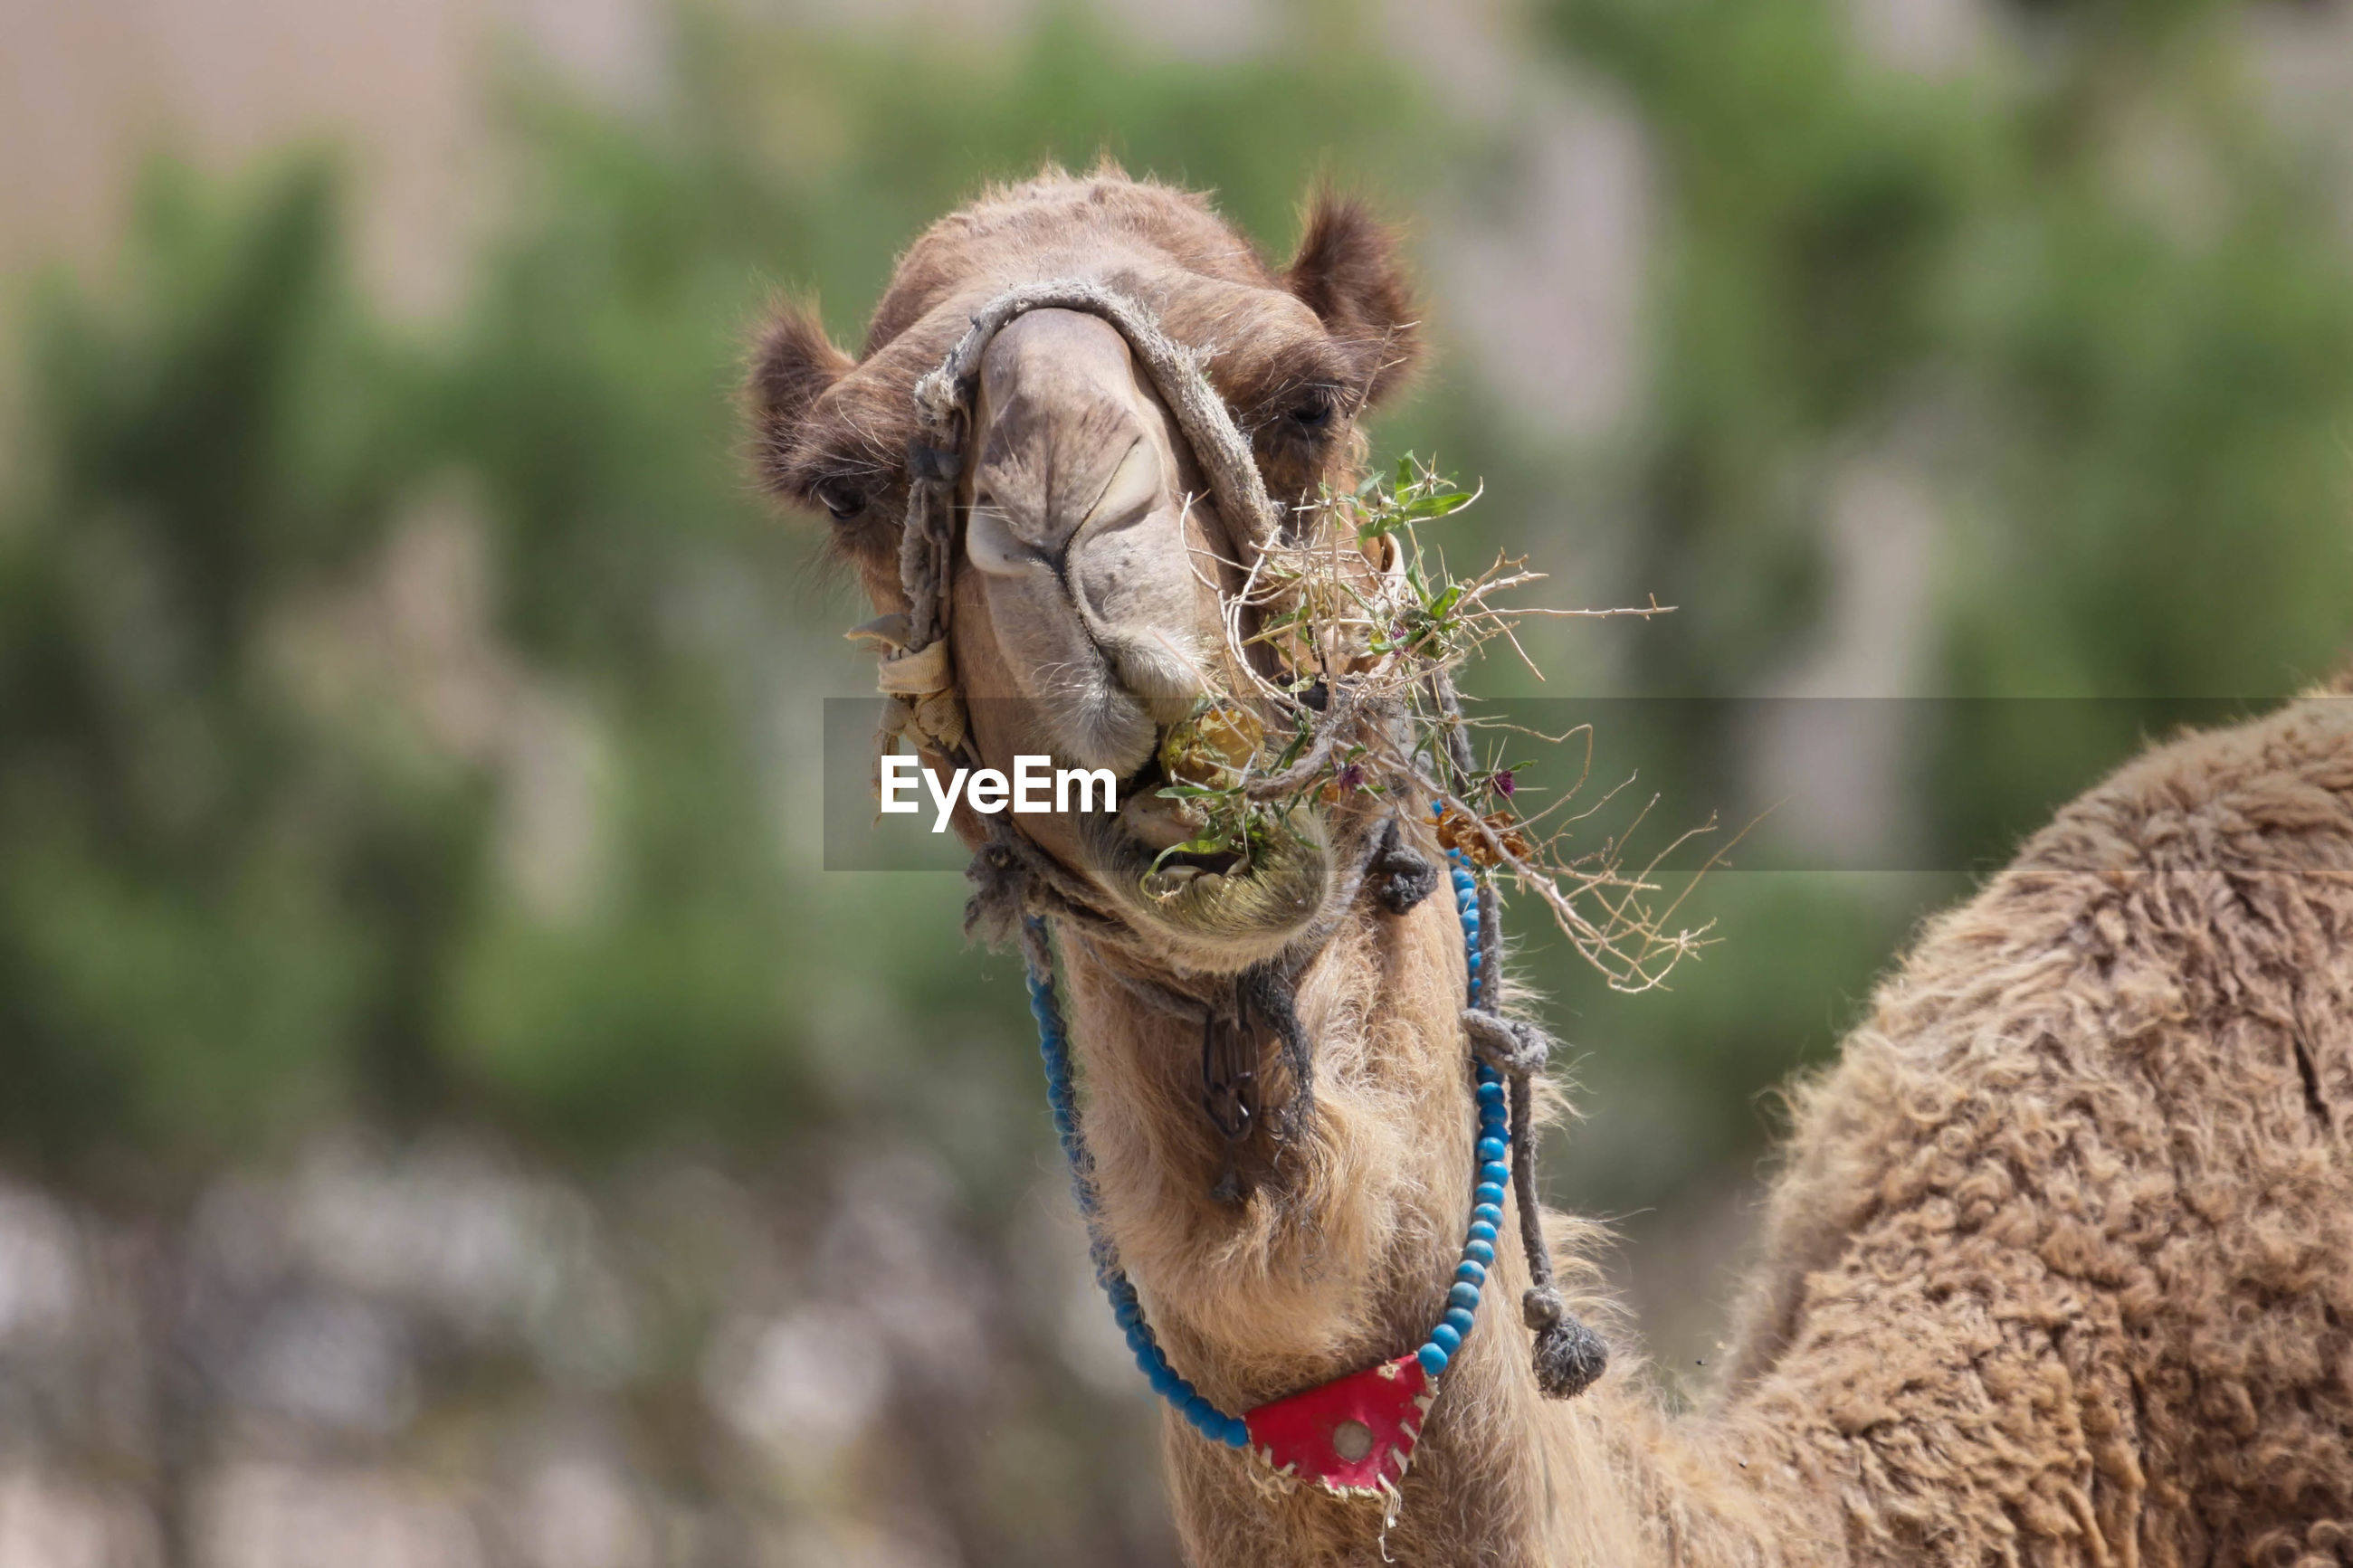 Portrait of camel eating grass outdoors